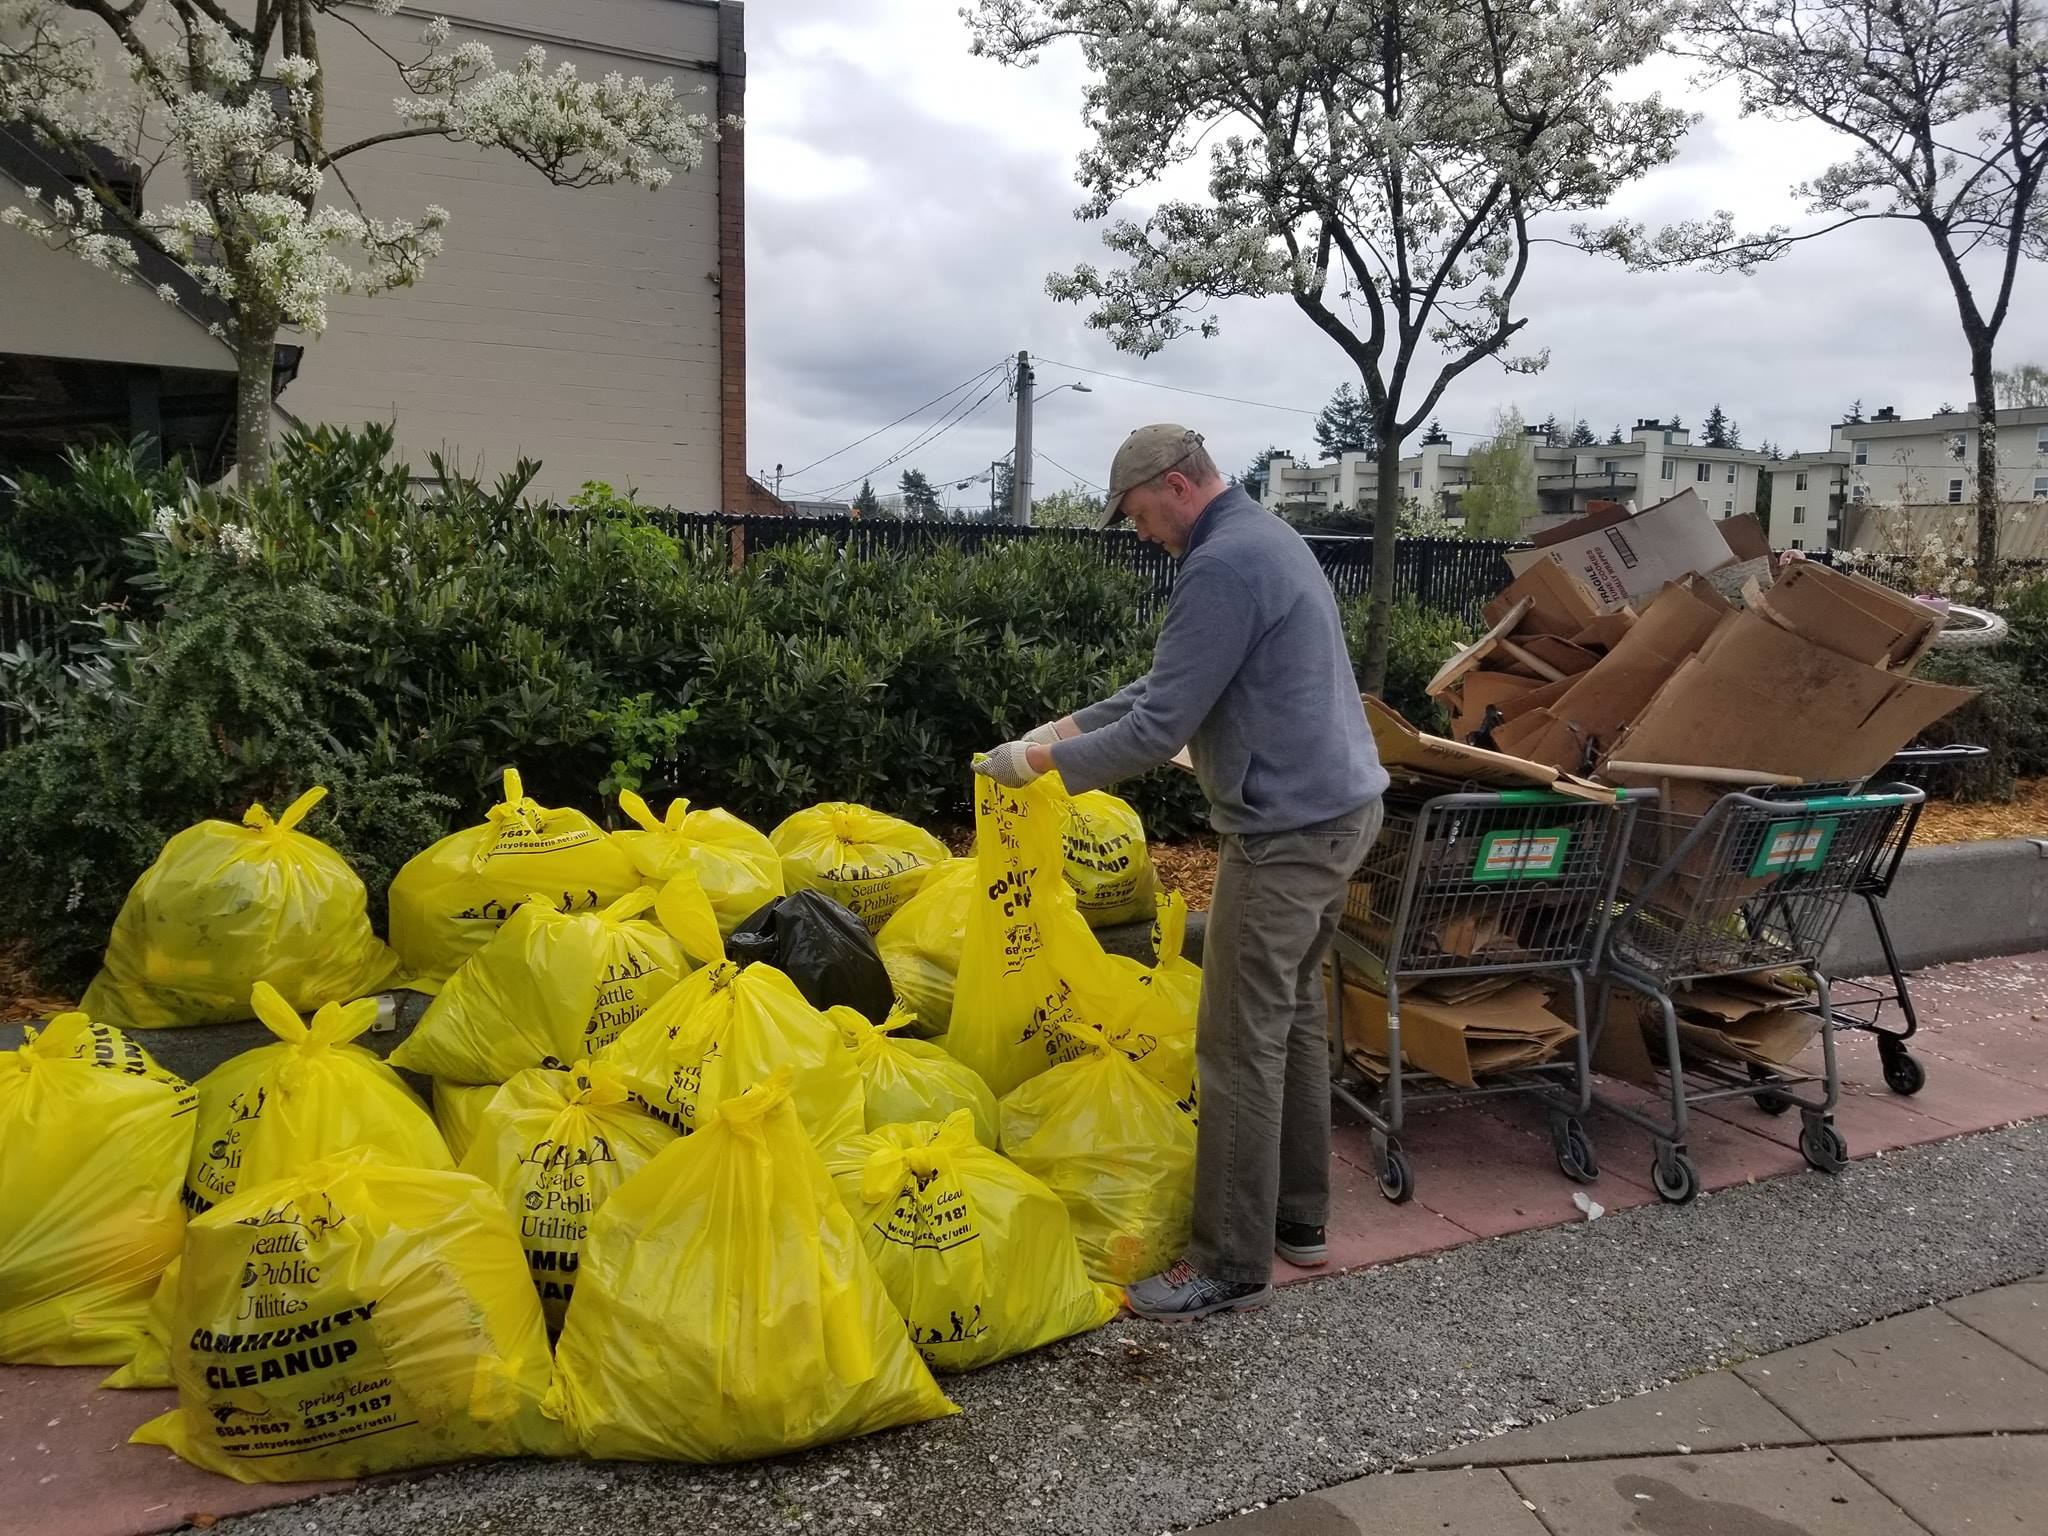 Chris with many bags of trash from Lake City Clean Up